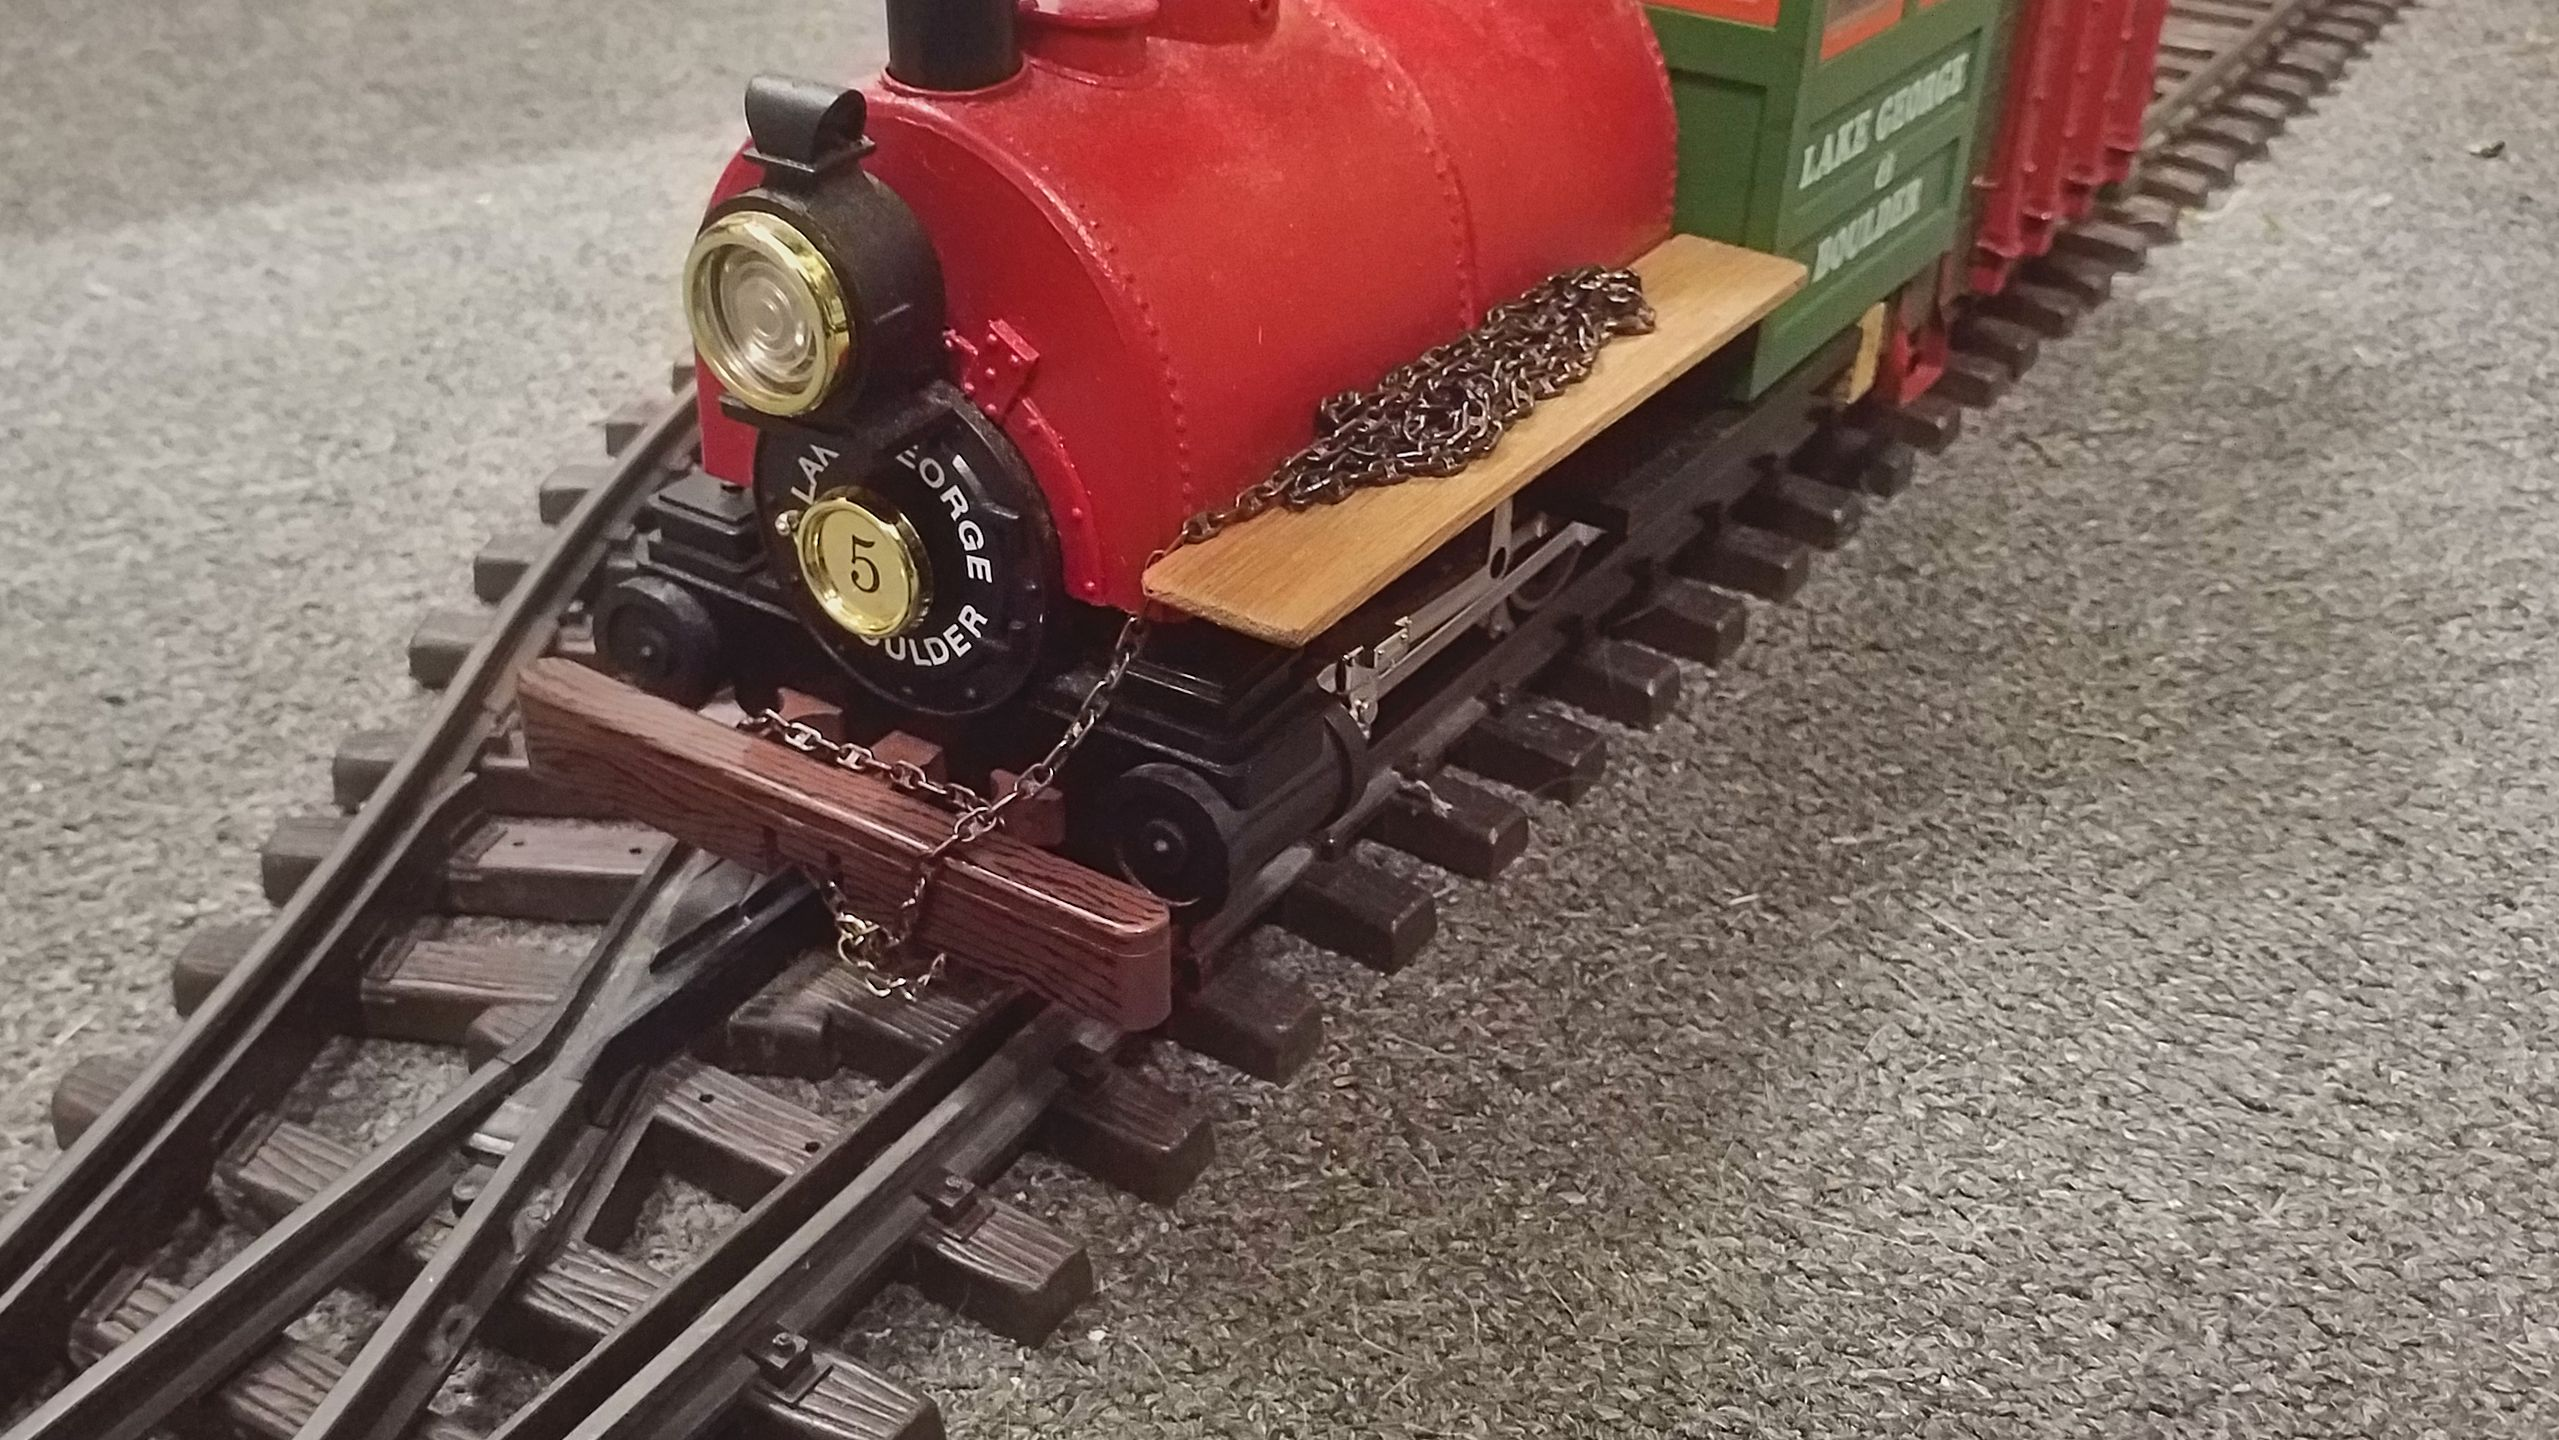 Meanwhile the chain can be fastened to the loco's front again.